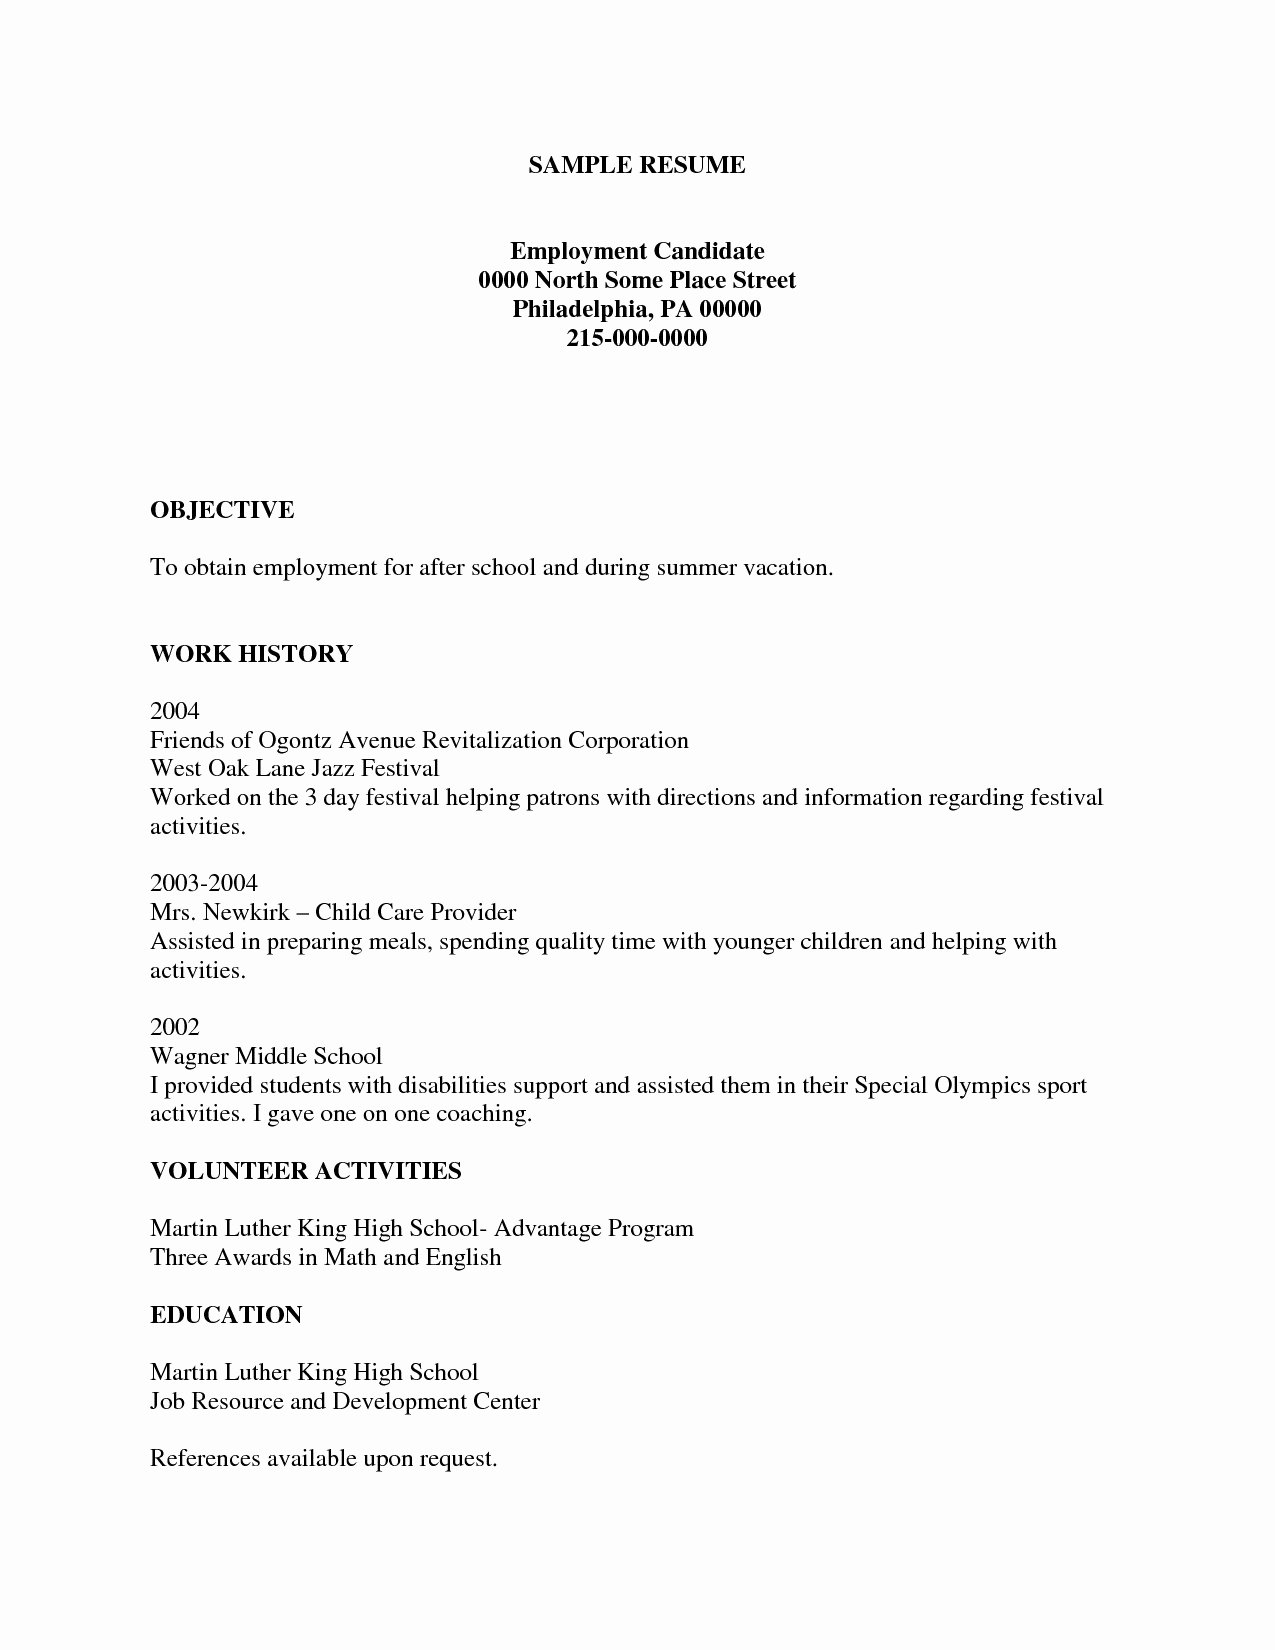 Resume Template for Kids